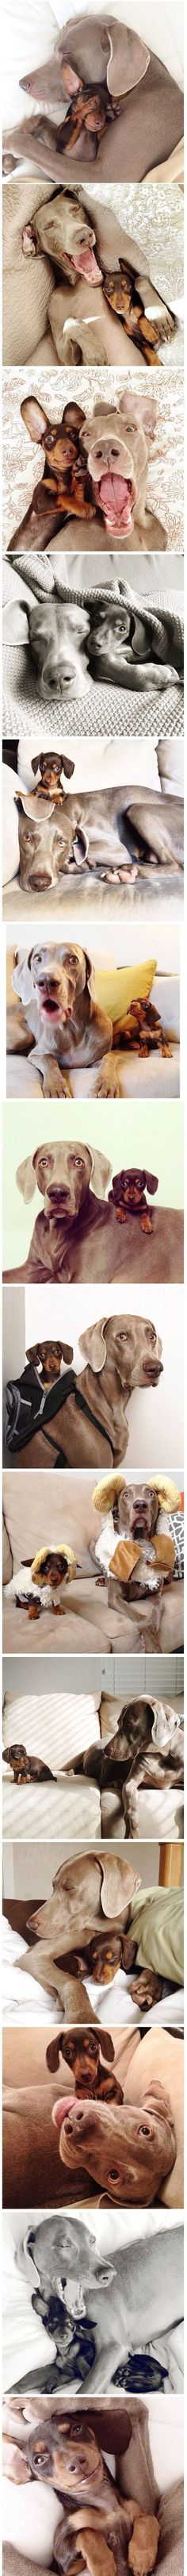 I'm pretty sure my heart just melted. Weimeraner and miniature Dachshund